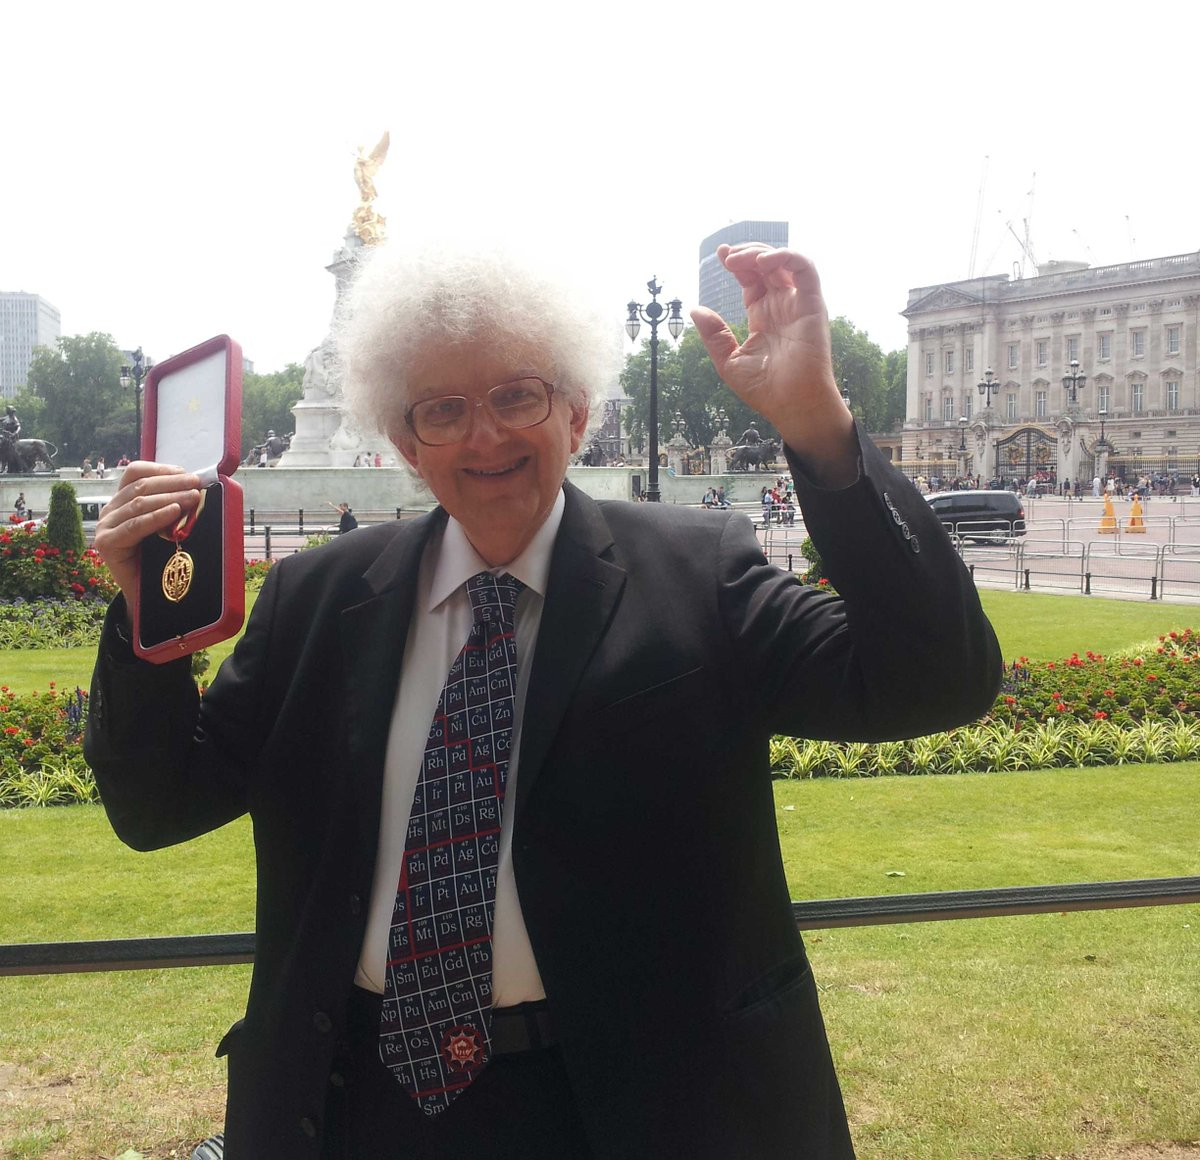 No copyright probs here - The Prof with his knighthood outside Buckingham Palace!!!! http://t.co/Cb5lRO7fYb